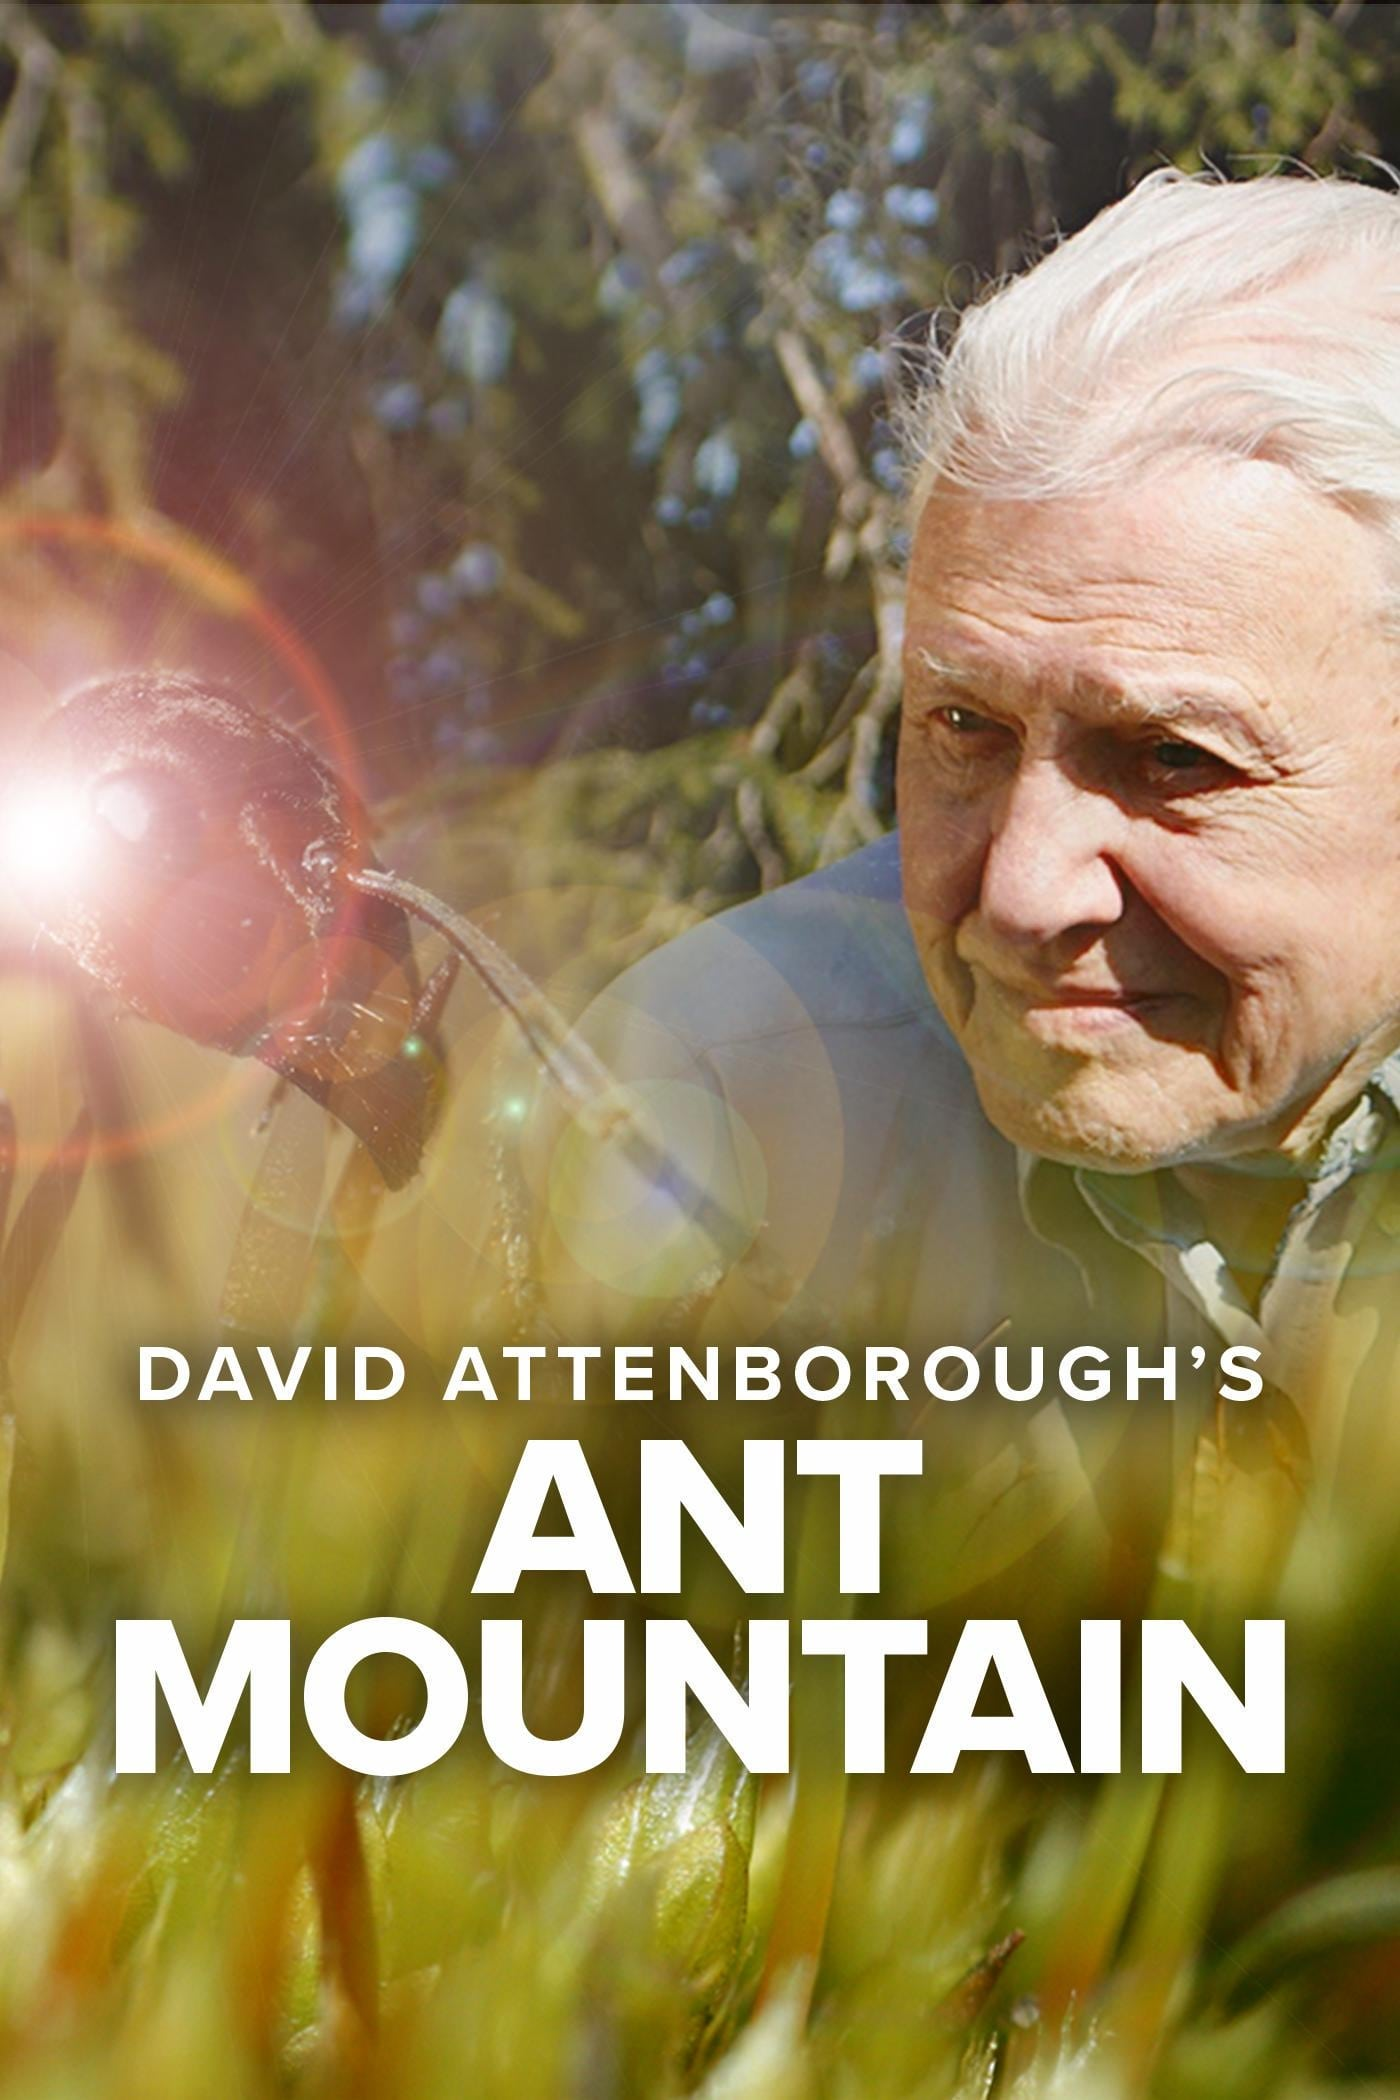 ATTENBOROUGH'S ANT MOUNTAIN